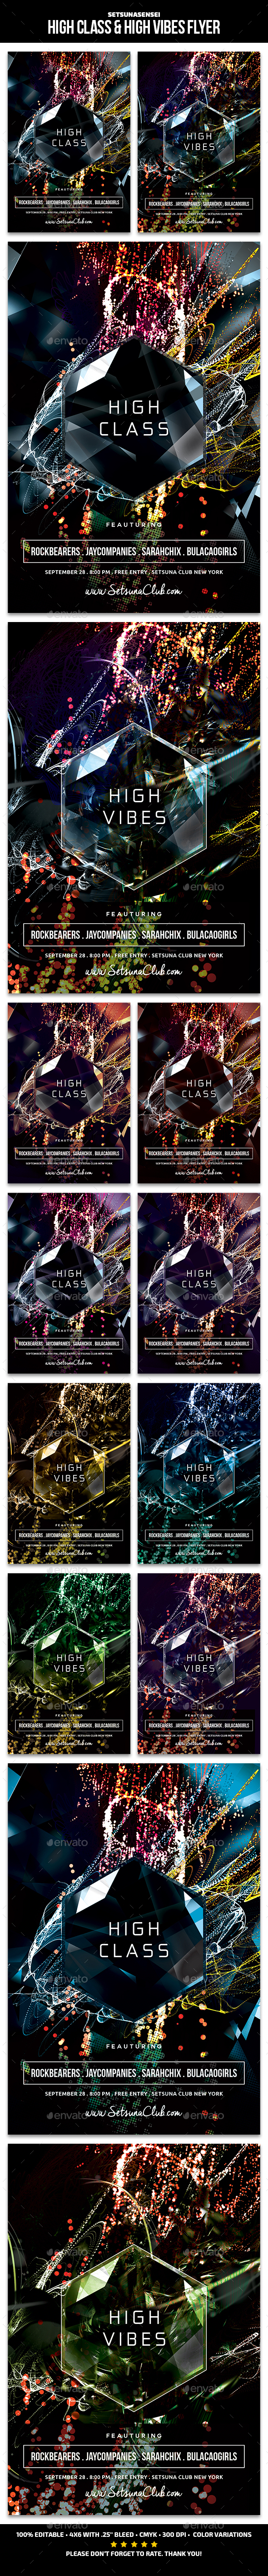 High Class & High Vibes Flyer - Clubs & Parties Events